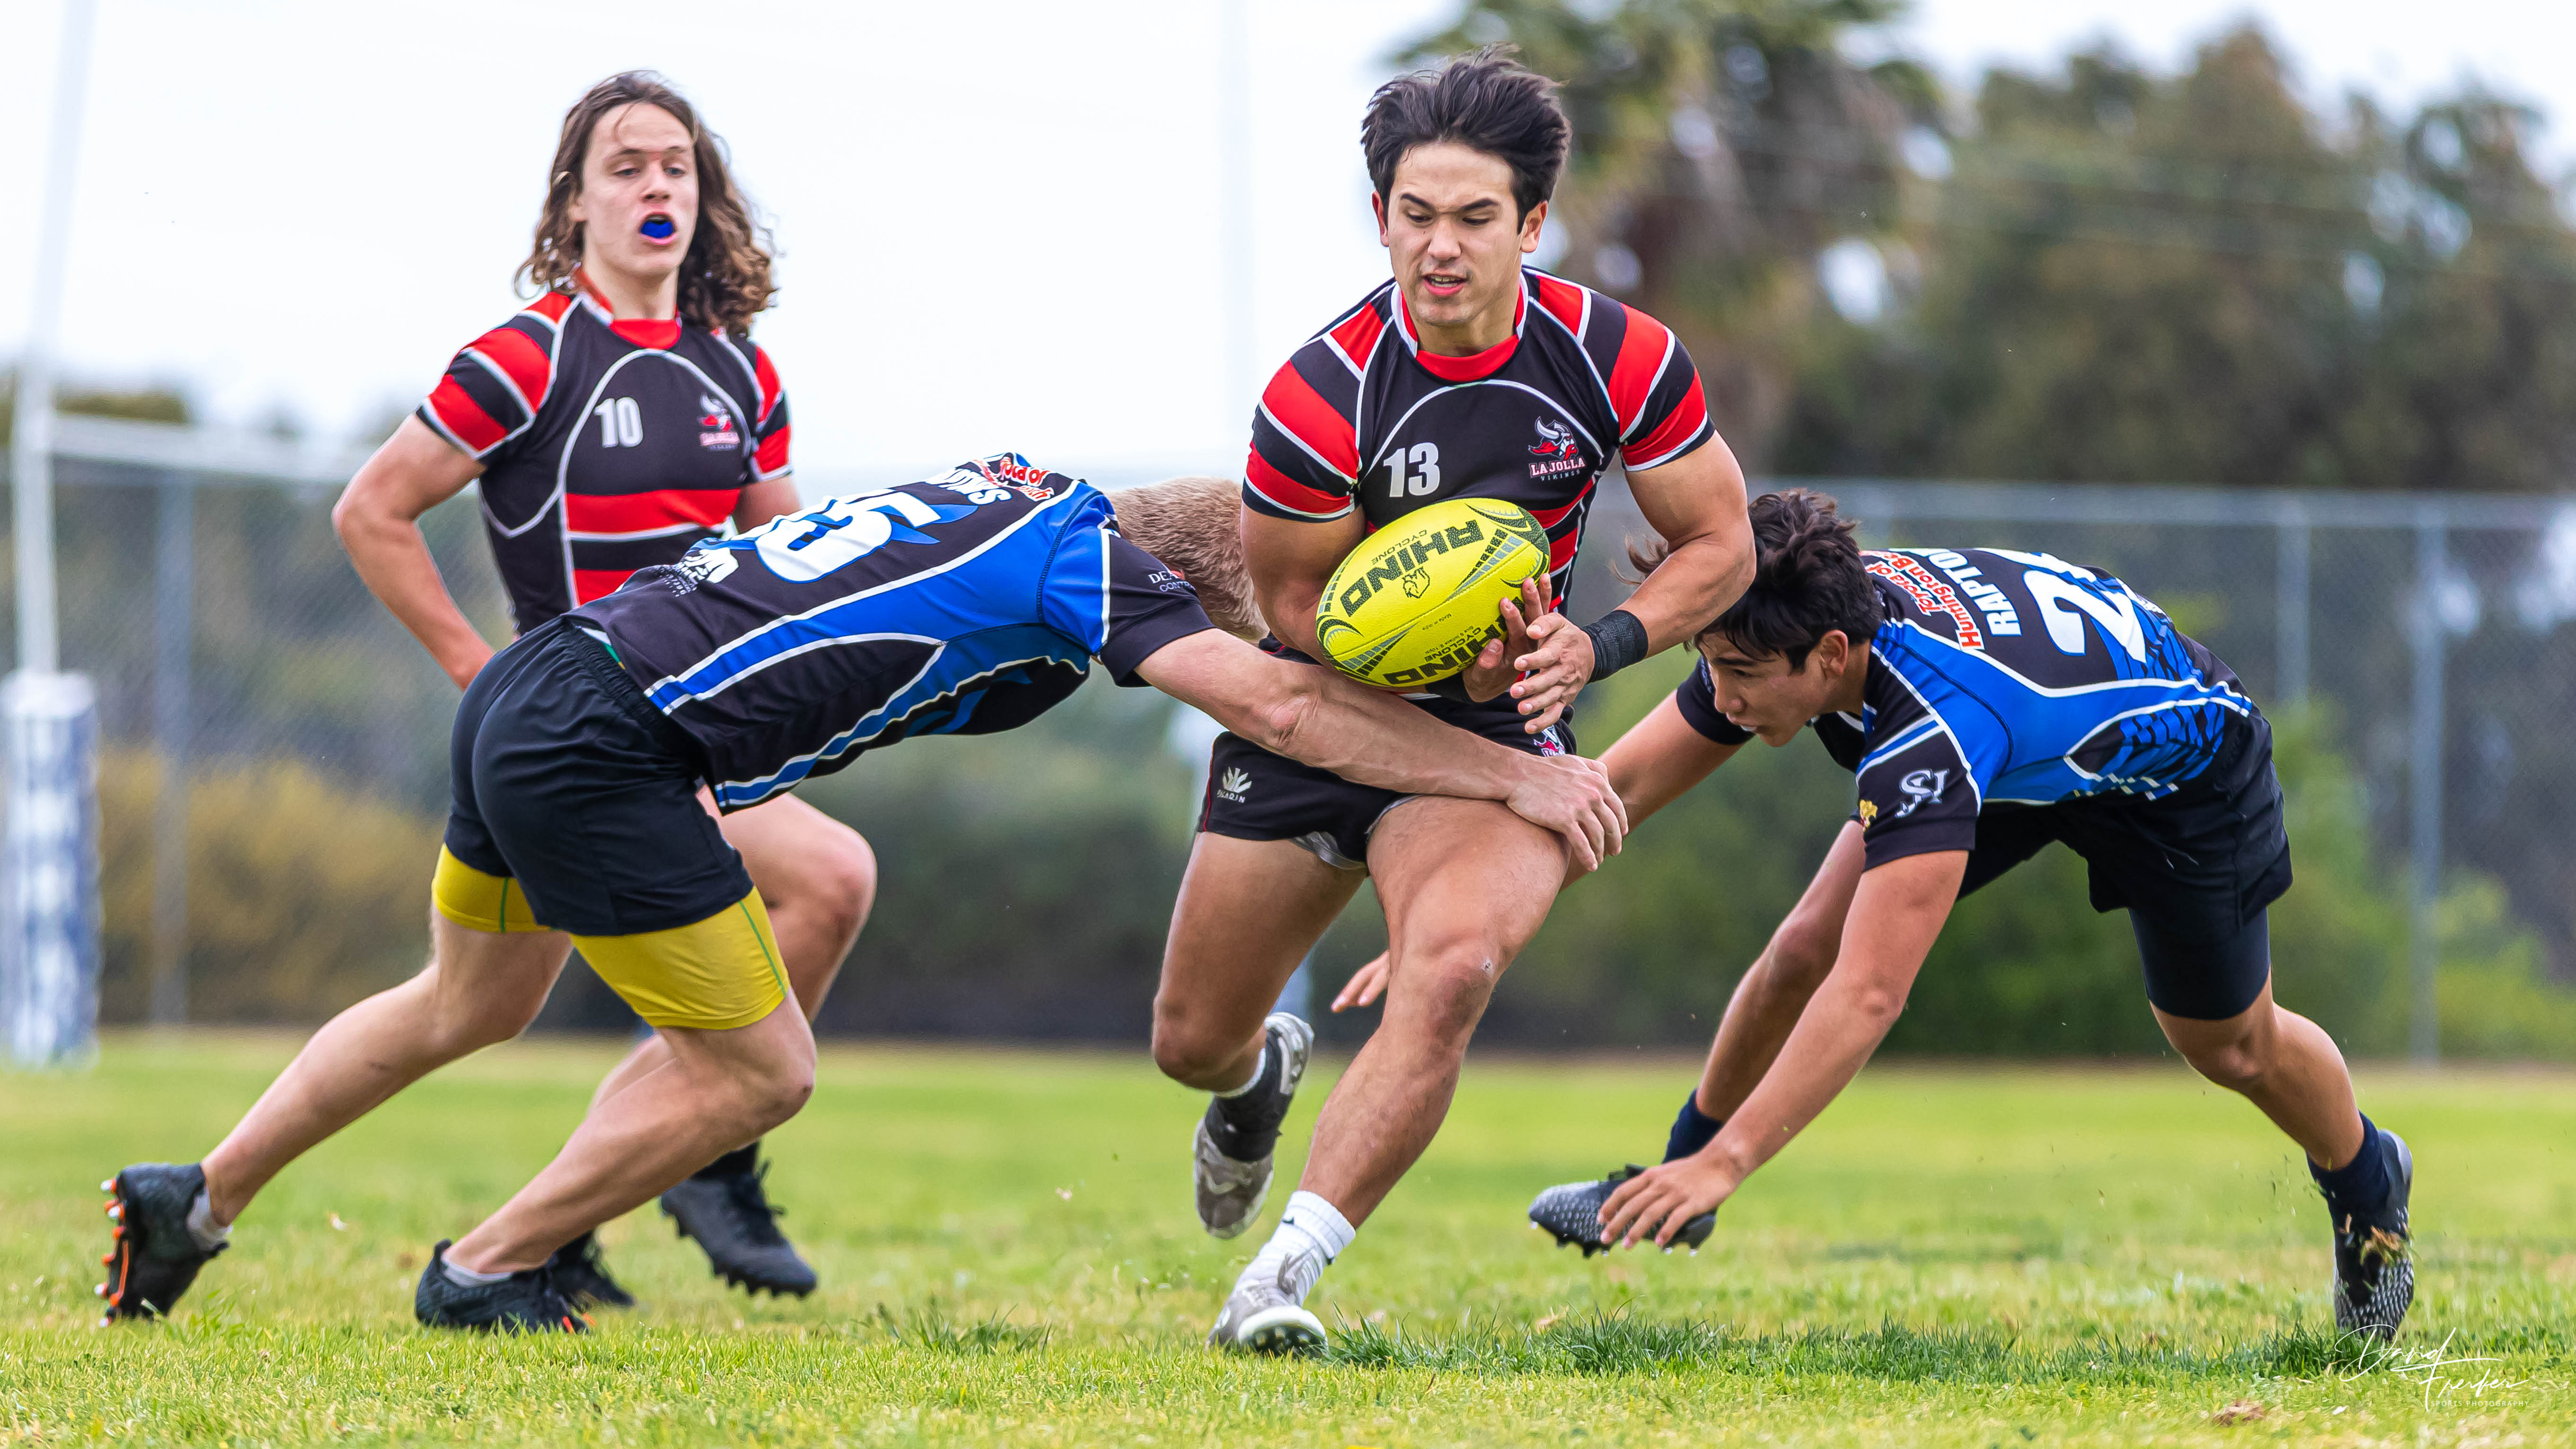 LaJollaRugby49